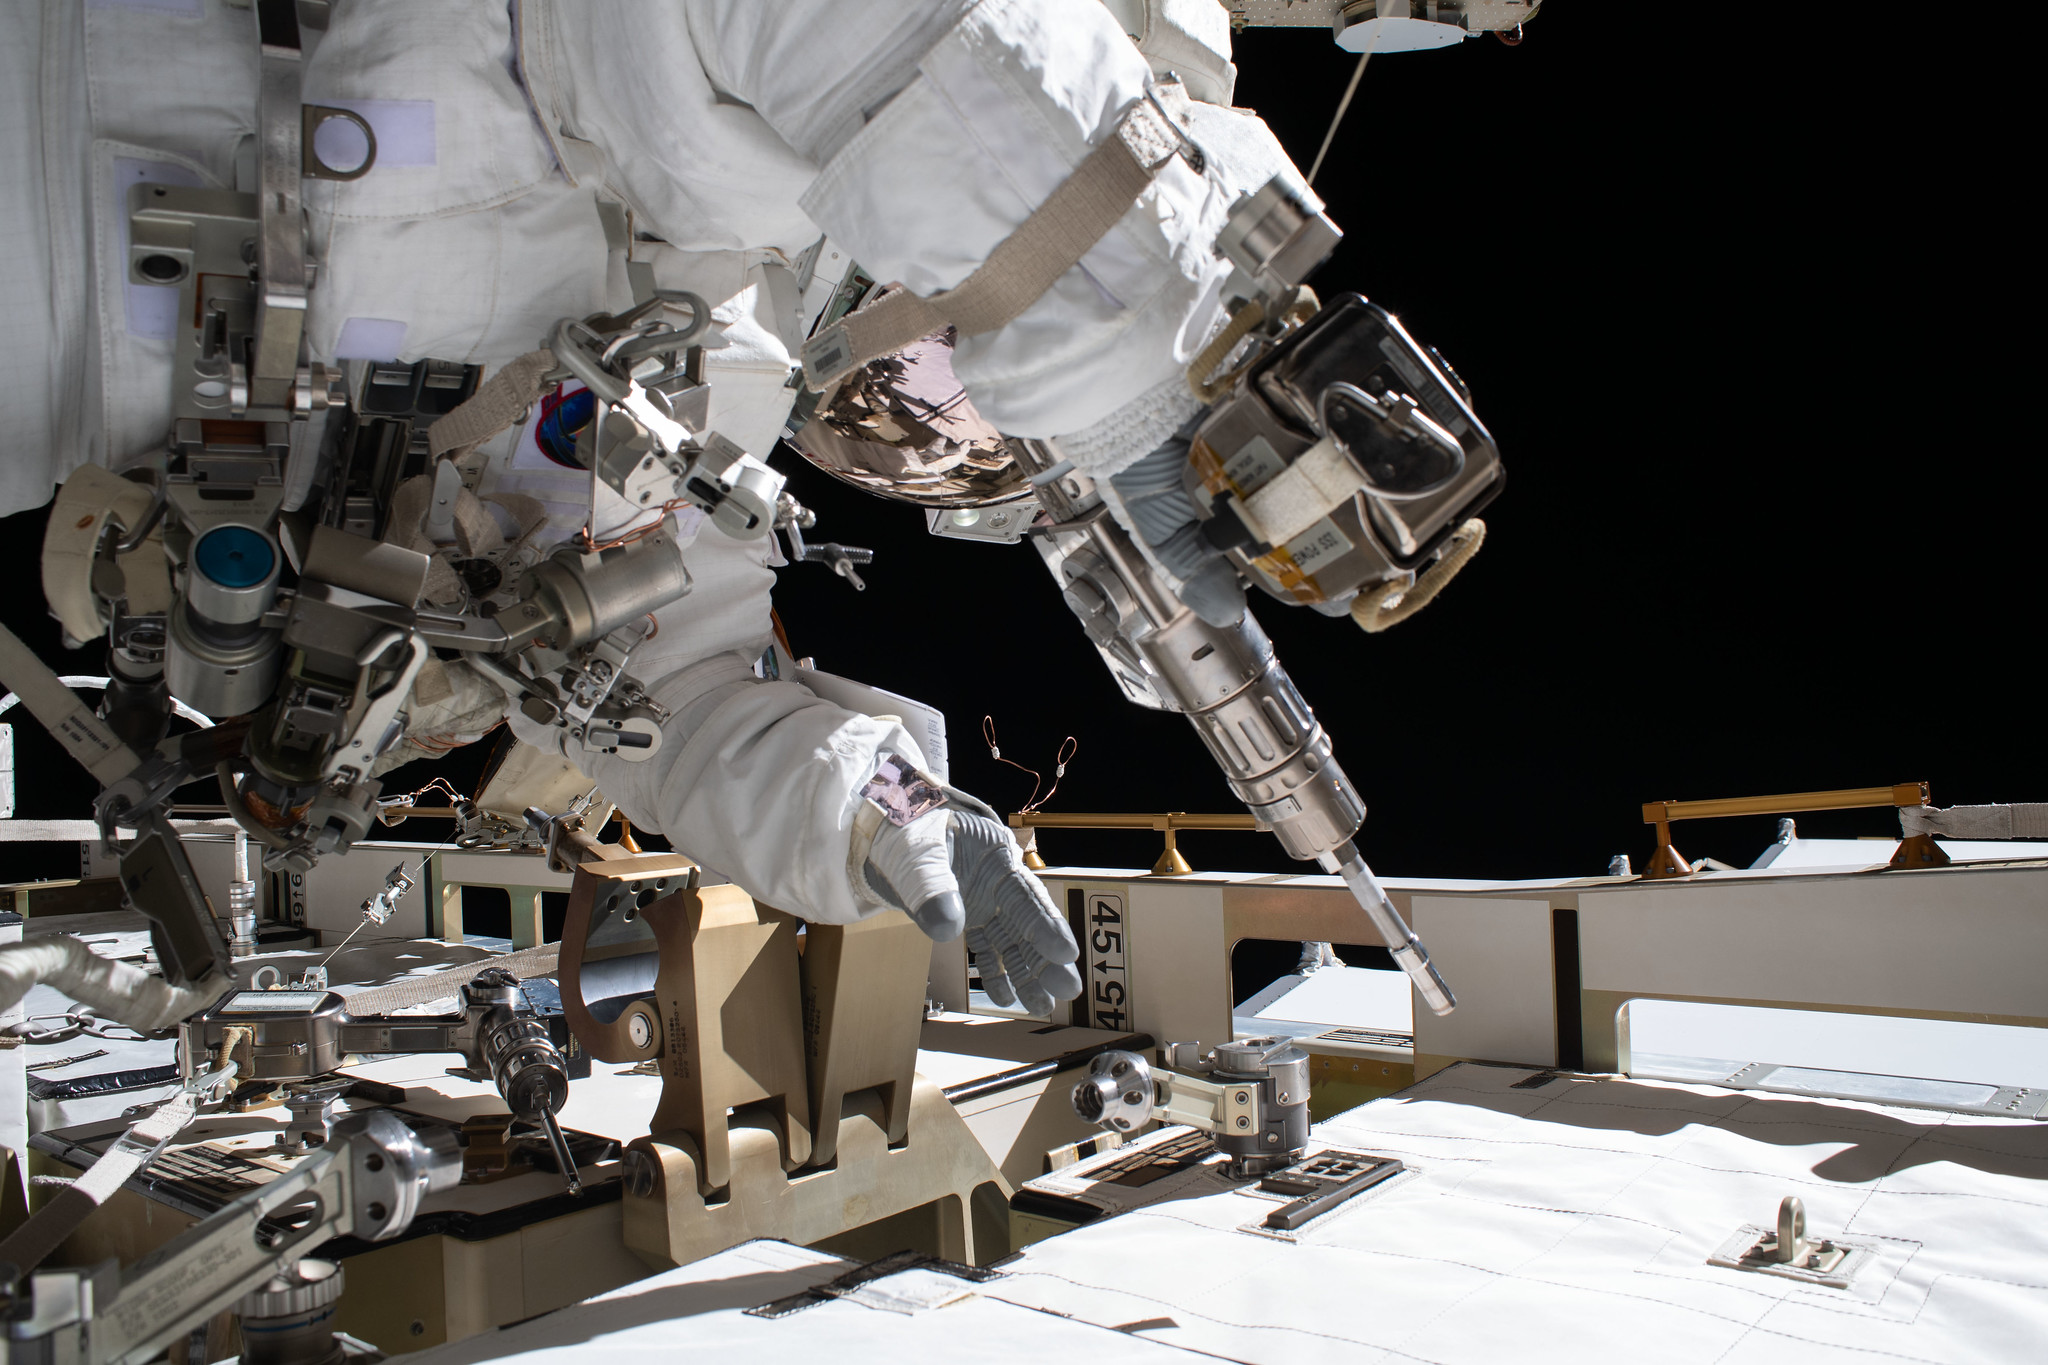 NASA astronaut and Expedition 63 Flight Engineer Bob Behnken works during a spacewalk to swap an aging nickel-hydrogen battery for a new lithium-ion battery on the International Space Station's Starboard-6 truss structure.